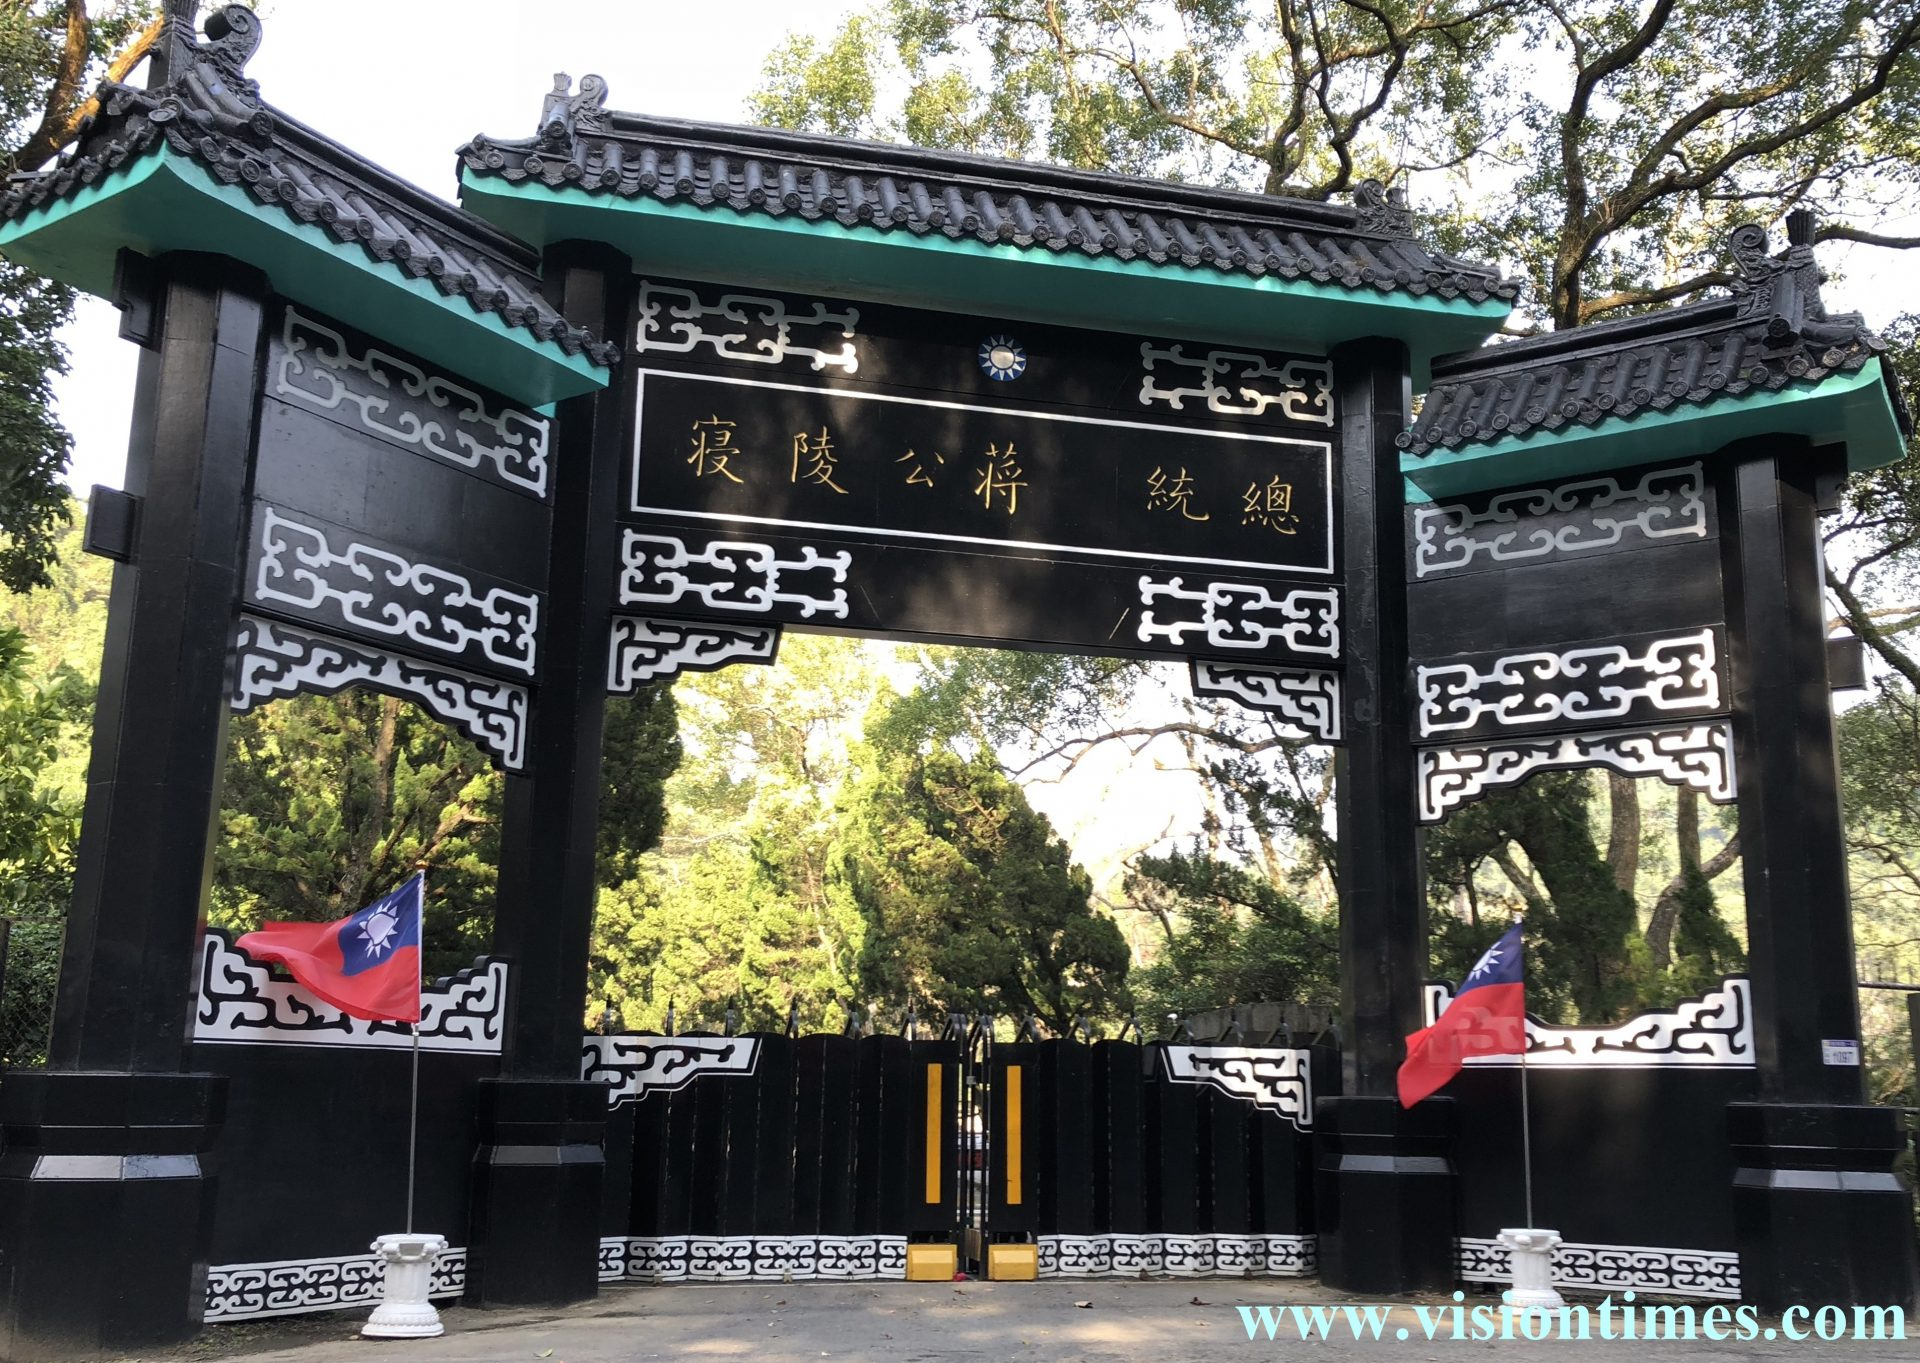 Cihu Guesthouse (慈湖賓館) was renamed Cihu Mausoleum (慈湖陵寑) after it became the temporary resting site of Chiang Kai-shek's remains in 1975. (Image: Billy Shyu / Vision Times)